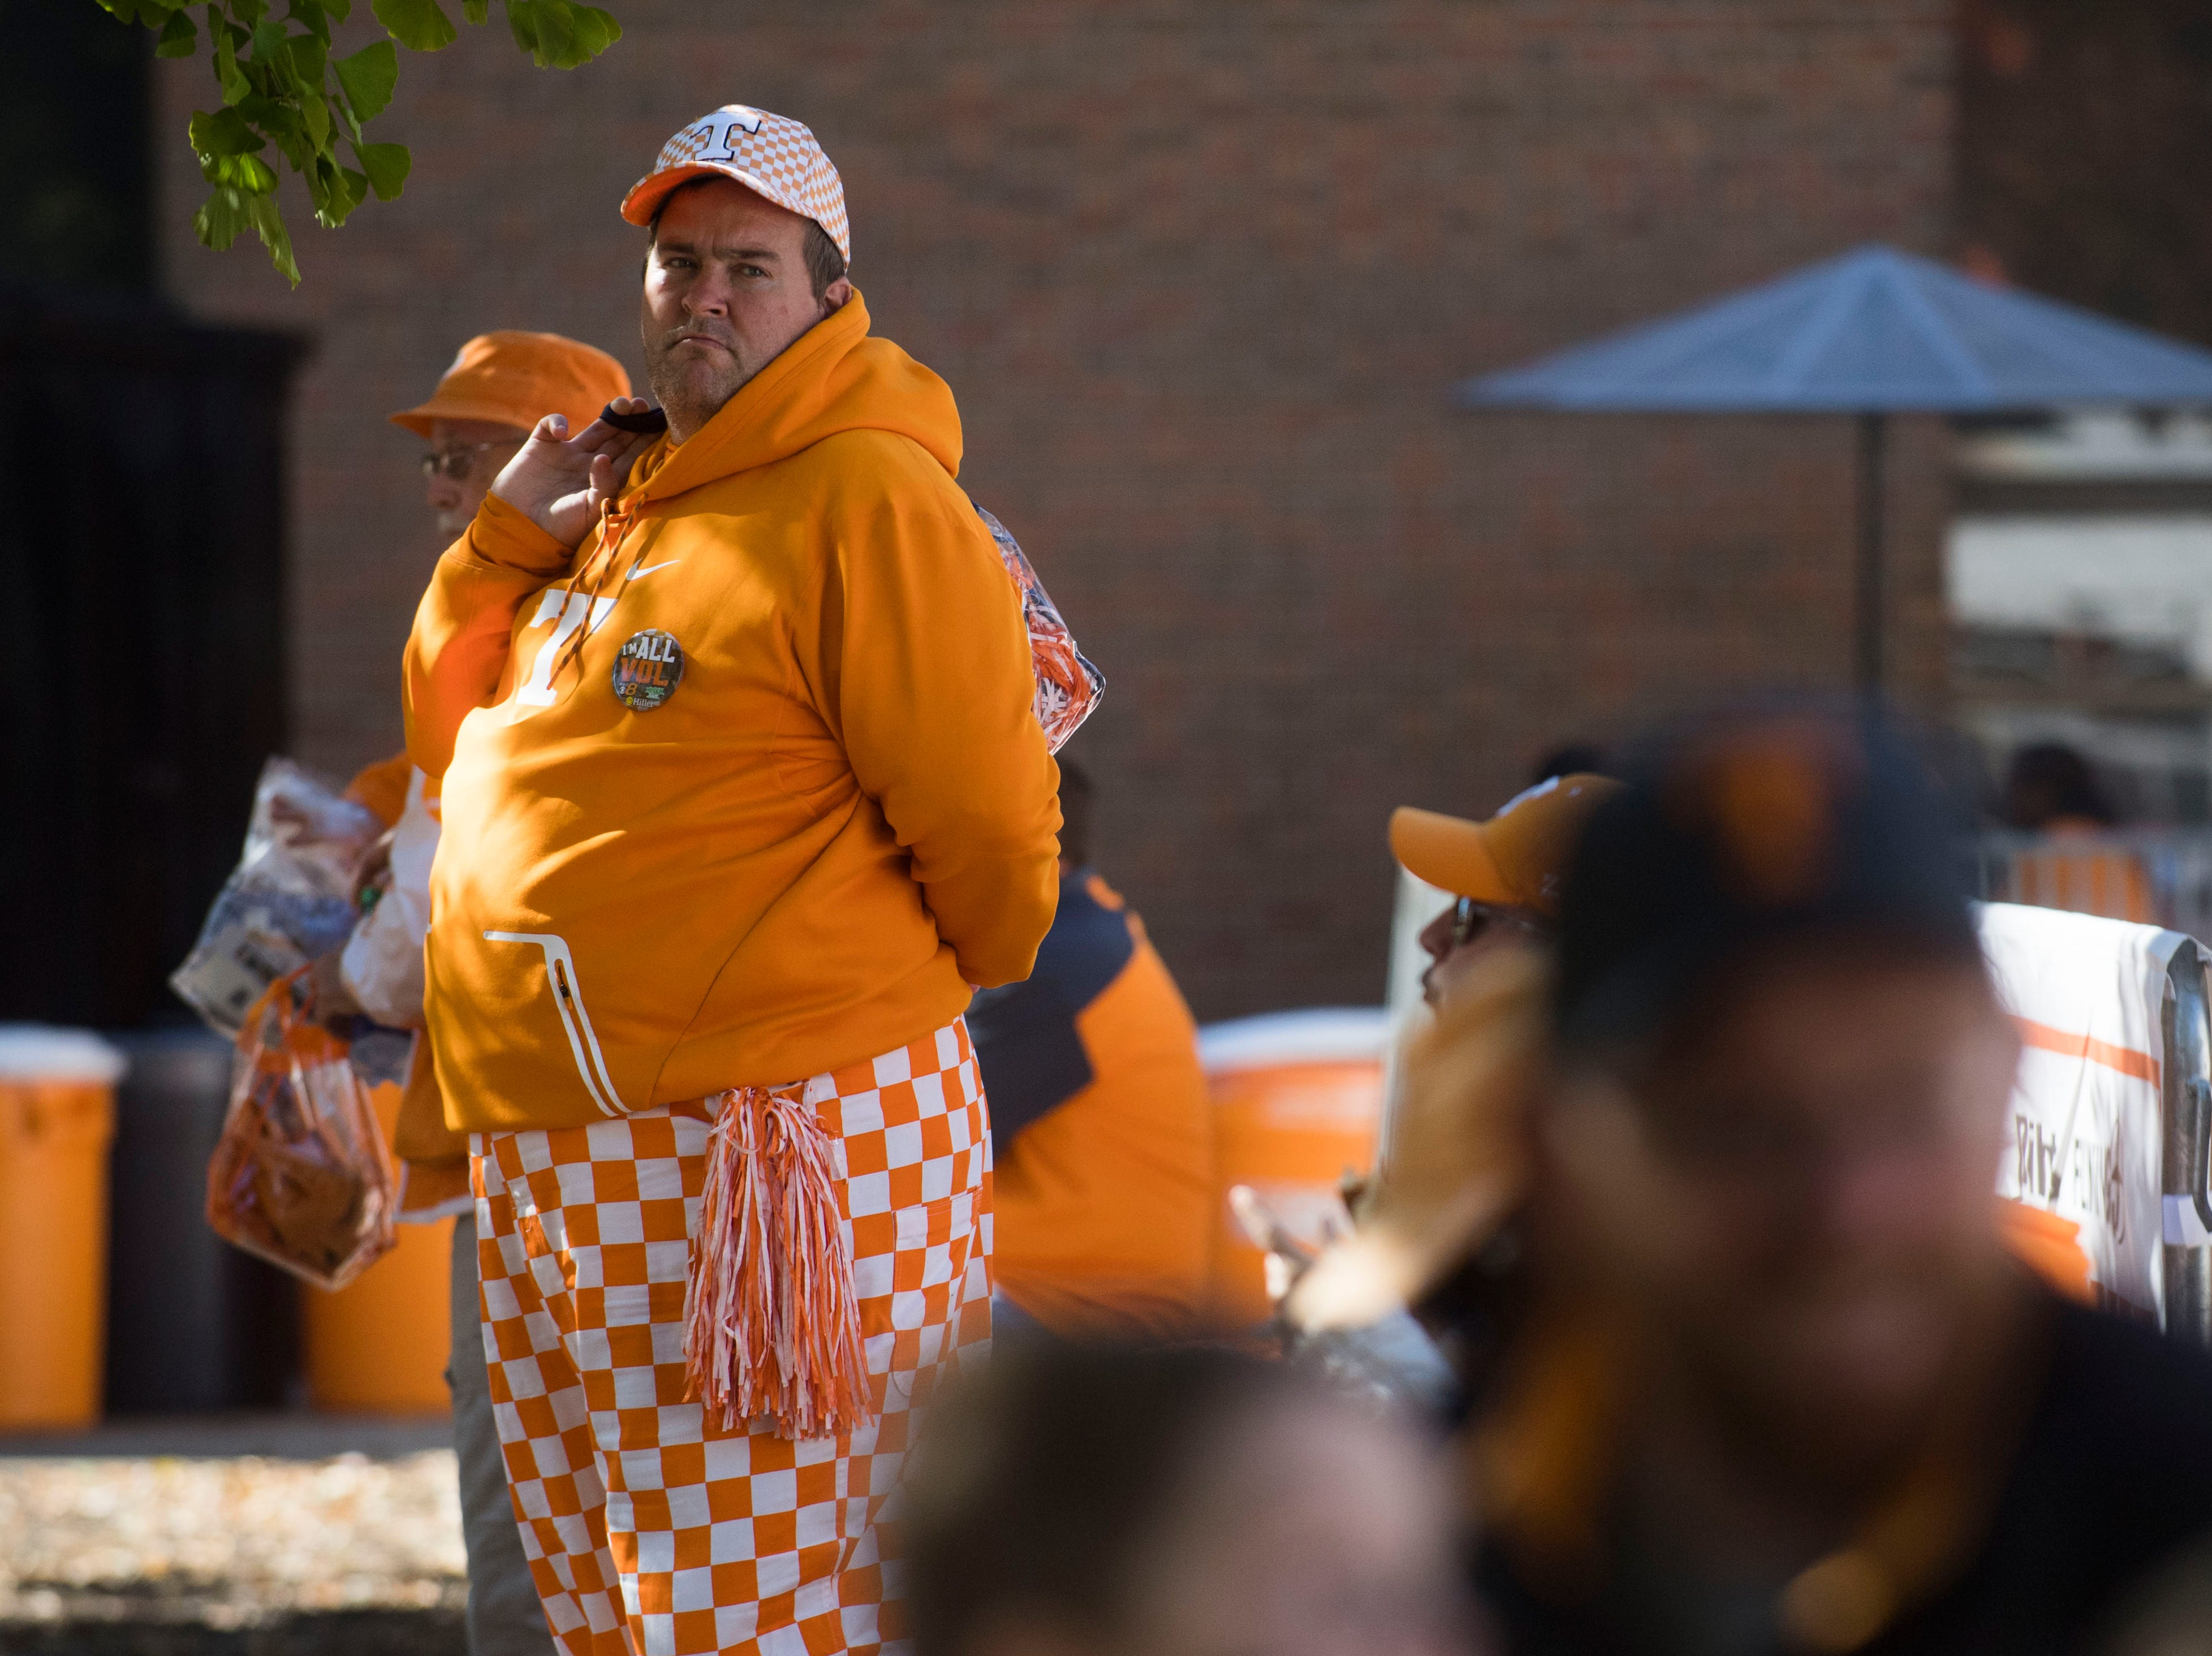 A Tennessee fan waits before the homecoming game between Tennessee and Charlotte outside of Neyland Stadium Saturday, Nov. 3, 2018.